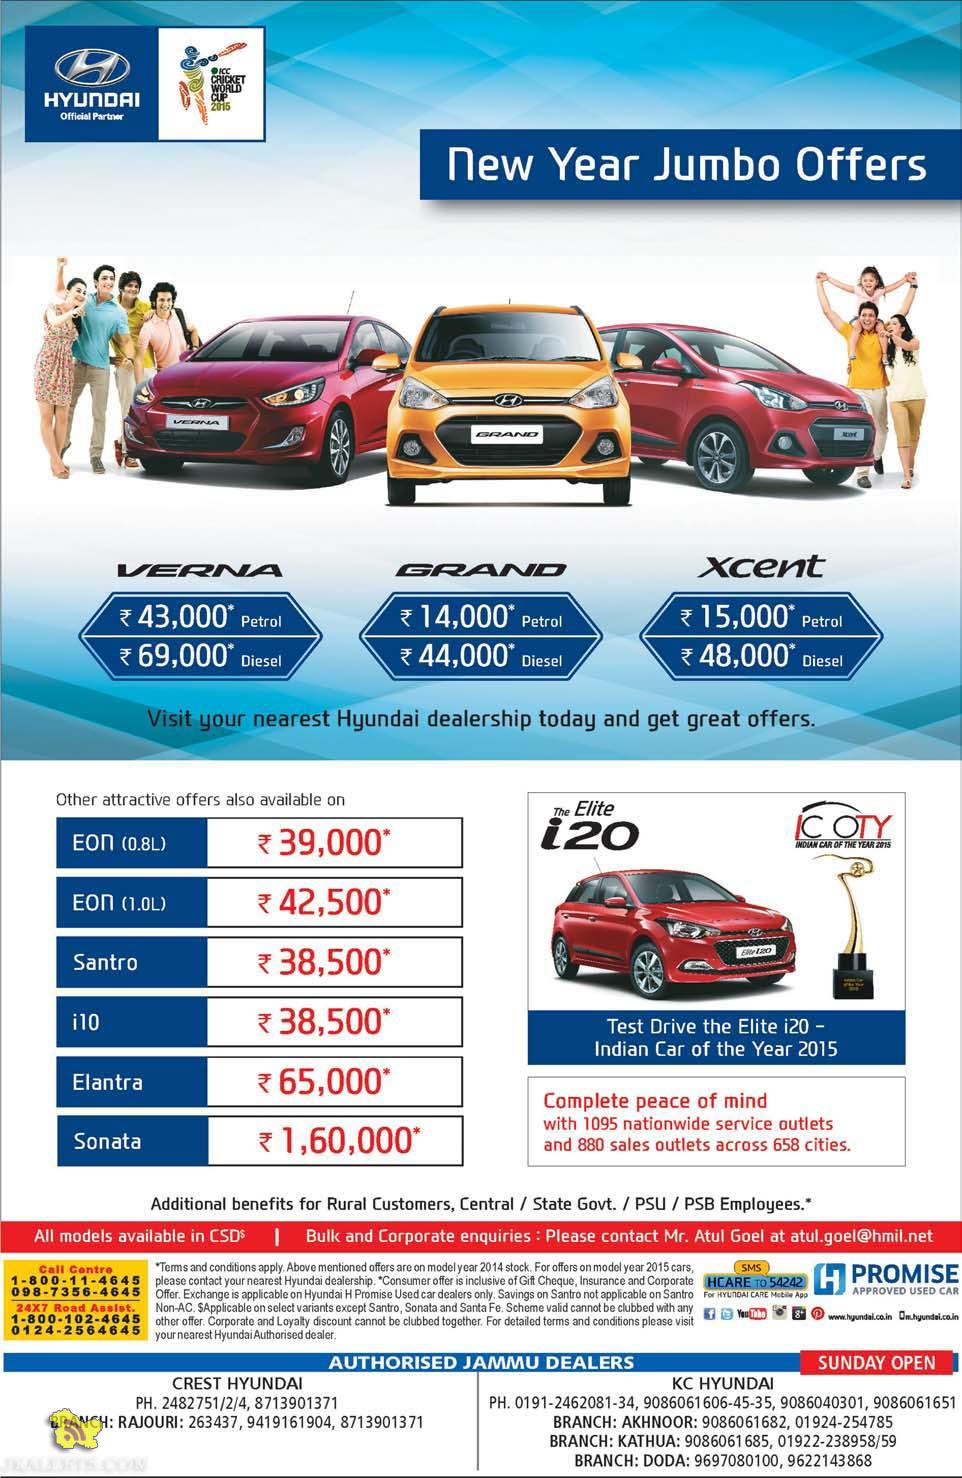 KC HYUNDAI OFFER